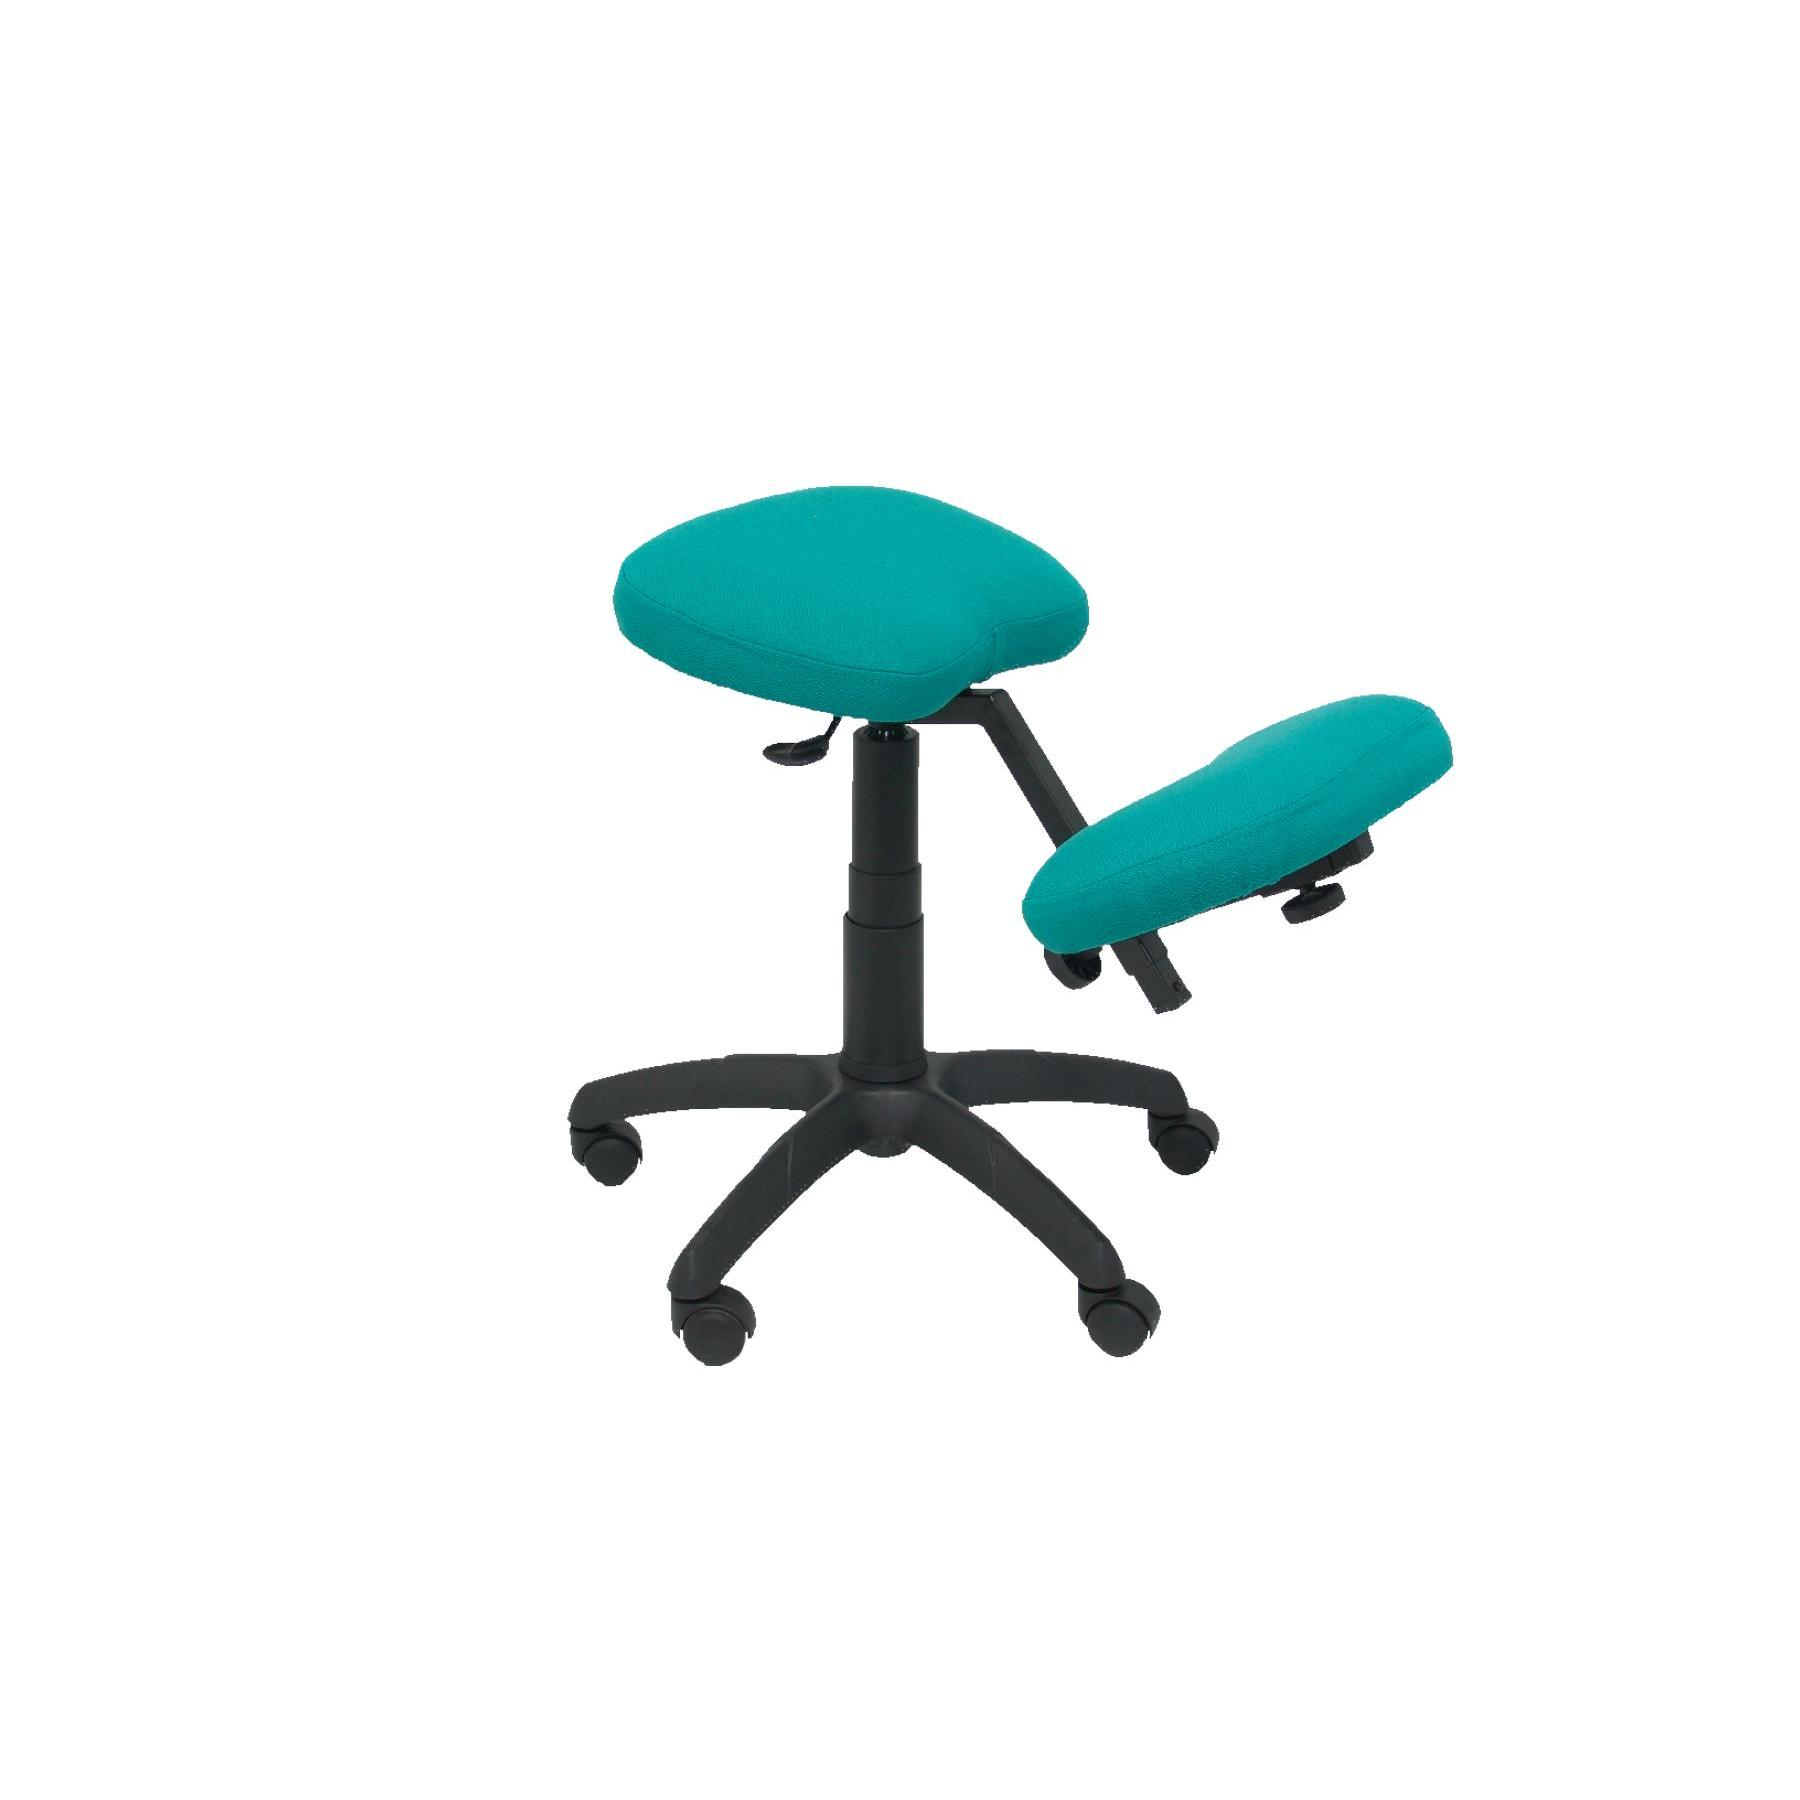 Office's Stool Ergonomic Swivel And Dimmable In High Altitude Up Seat Upholstered In BALI Tissue Green Color Clear (RODI